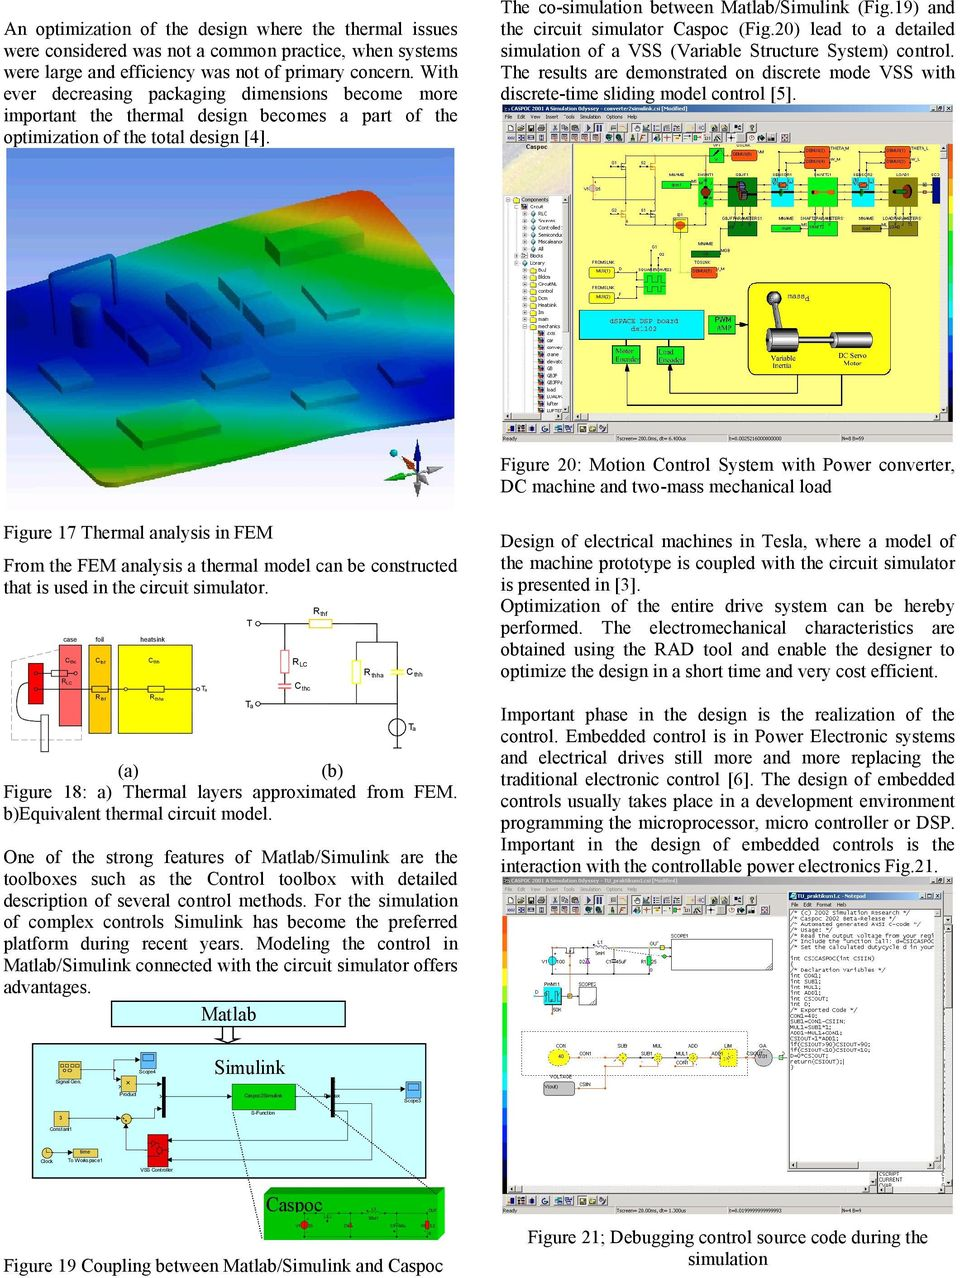 Simulation and Animation of Power Electronics and Drives